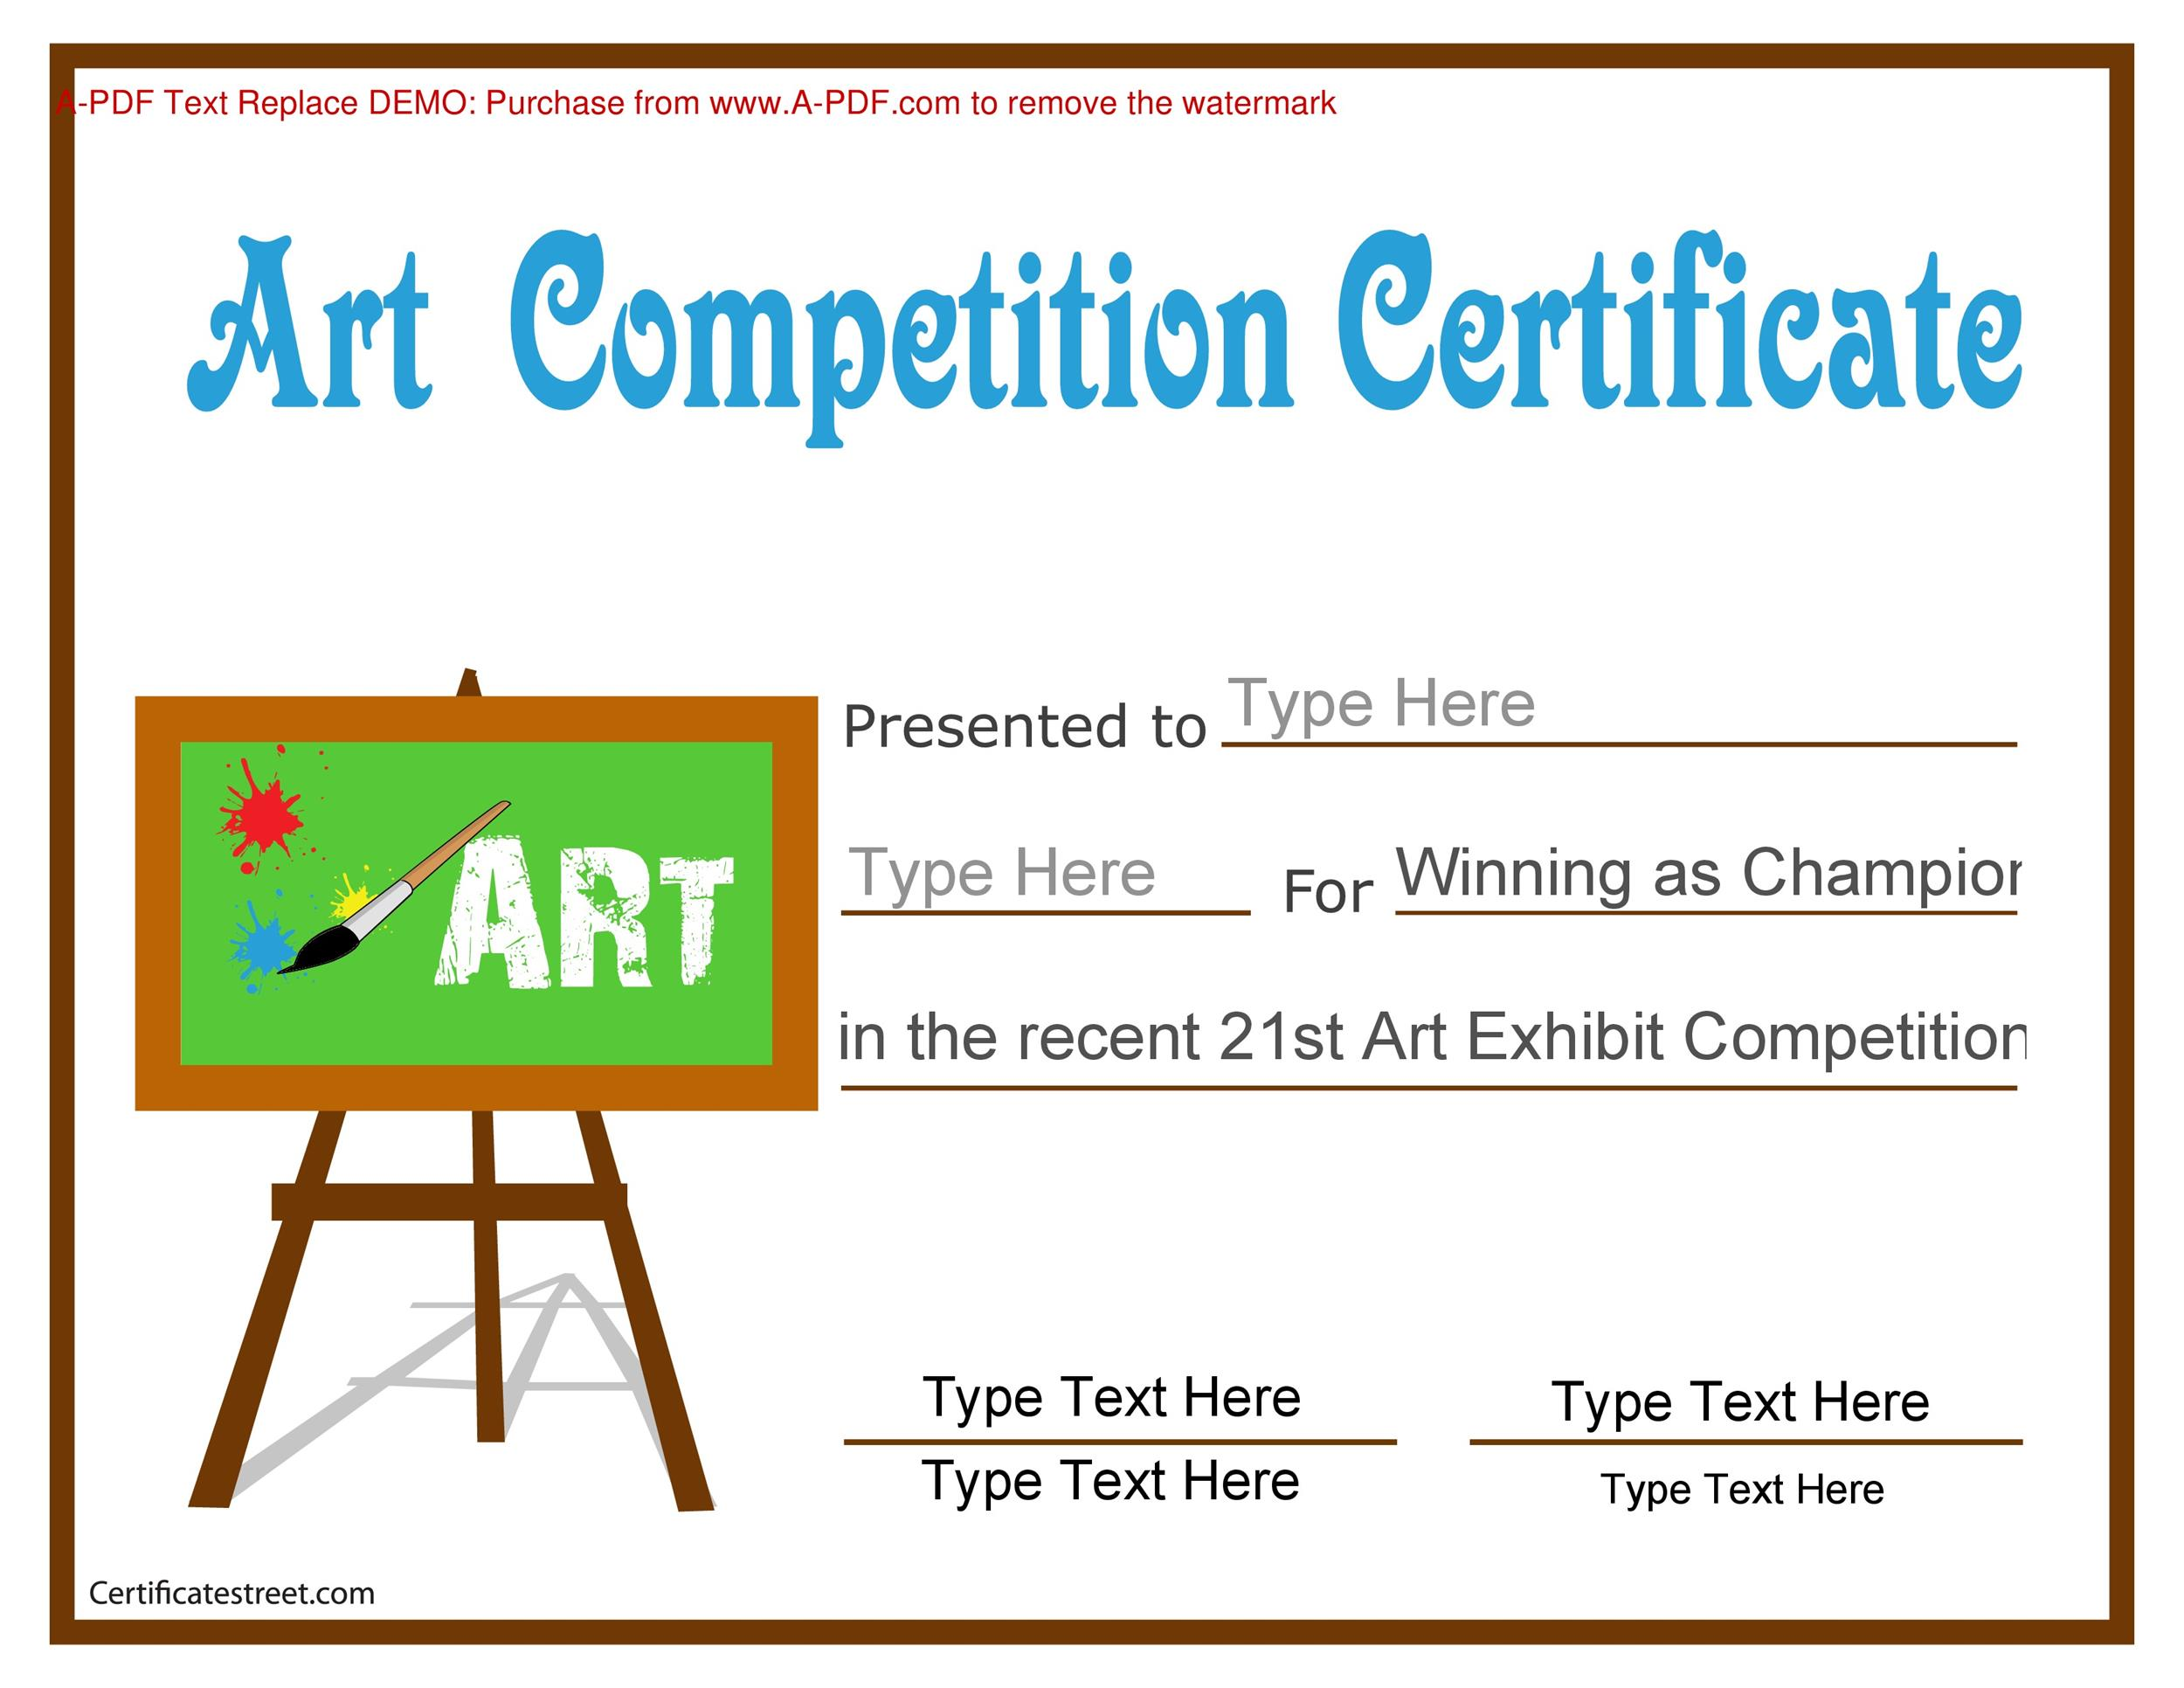 Sample Training Certificate. View Sample Certificate Of Completion